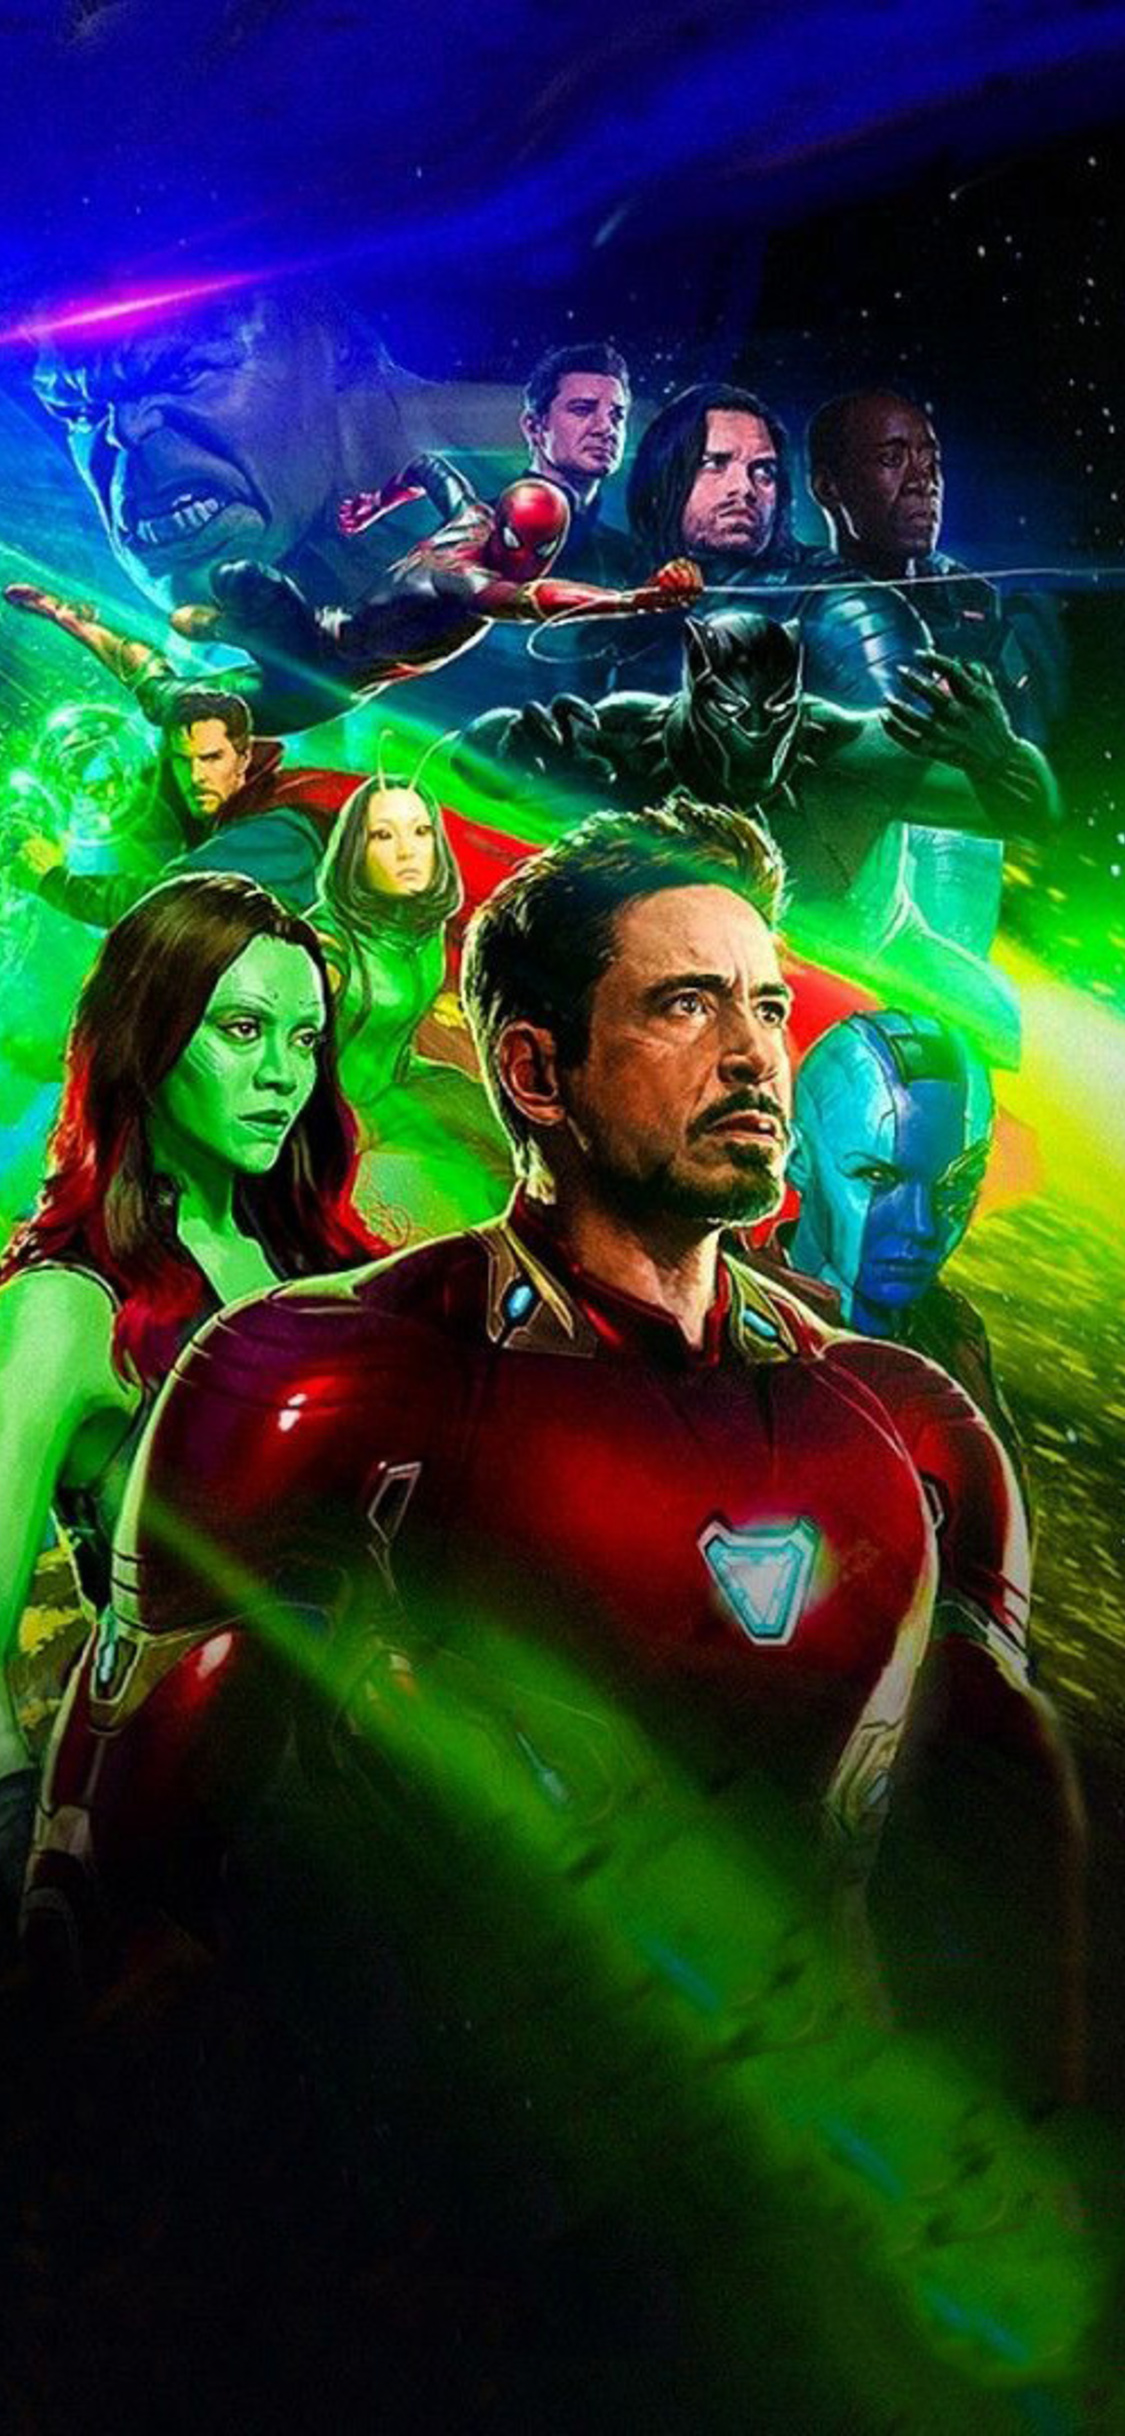 avengers infinity war poster iphone wallpapers xs